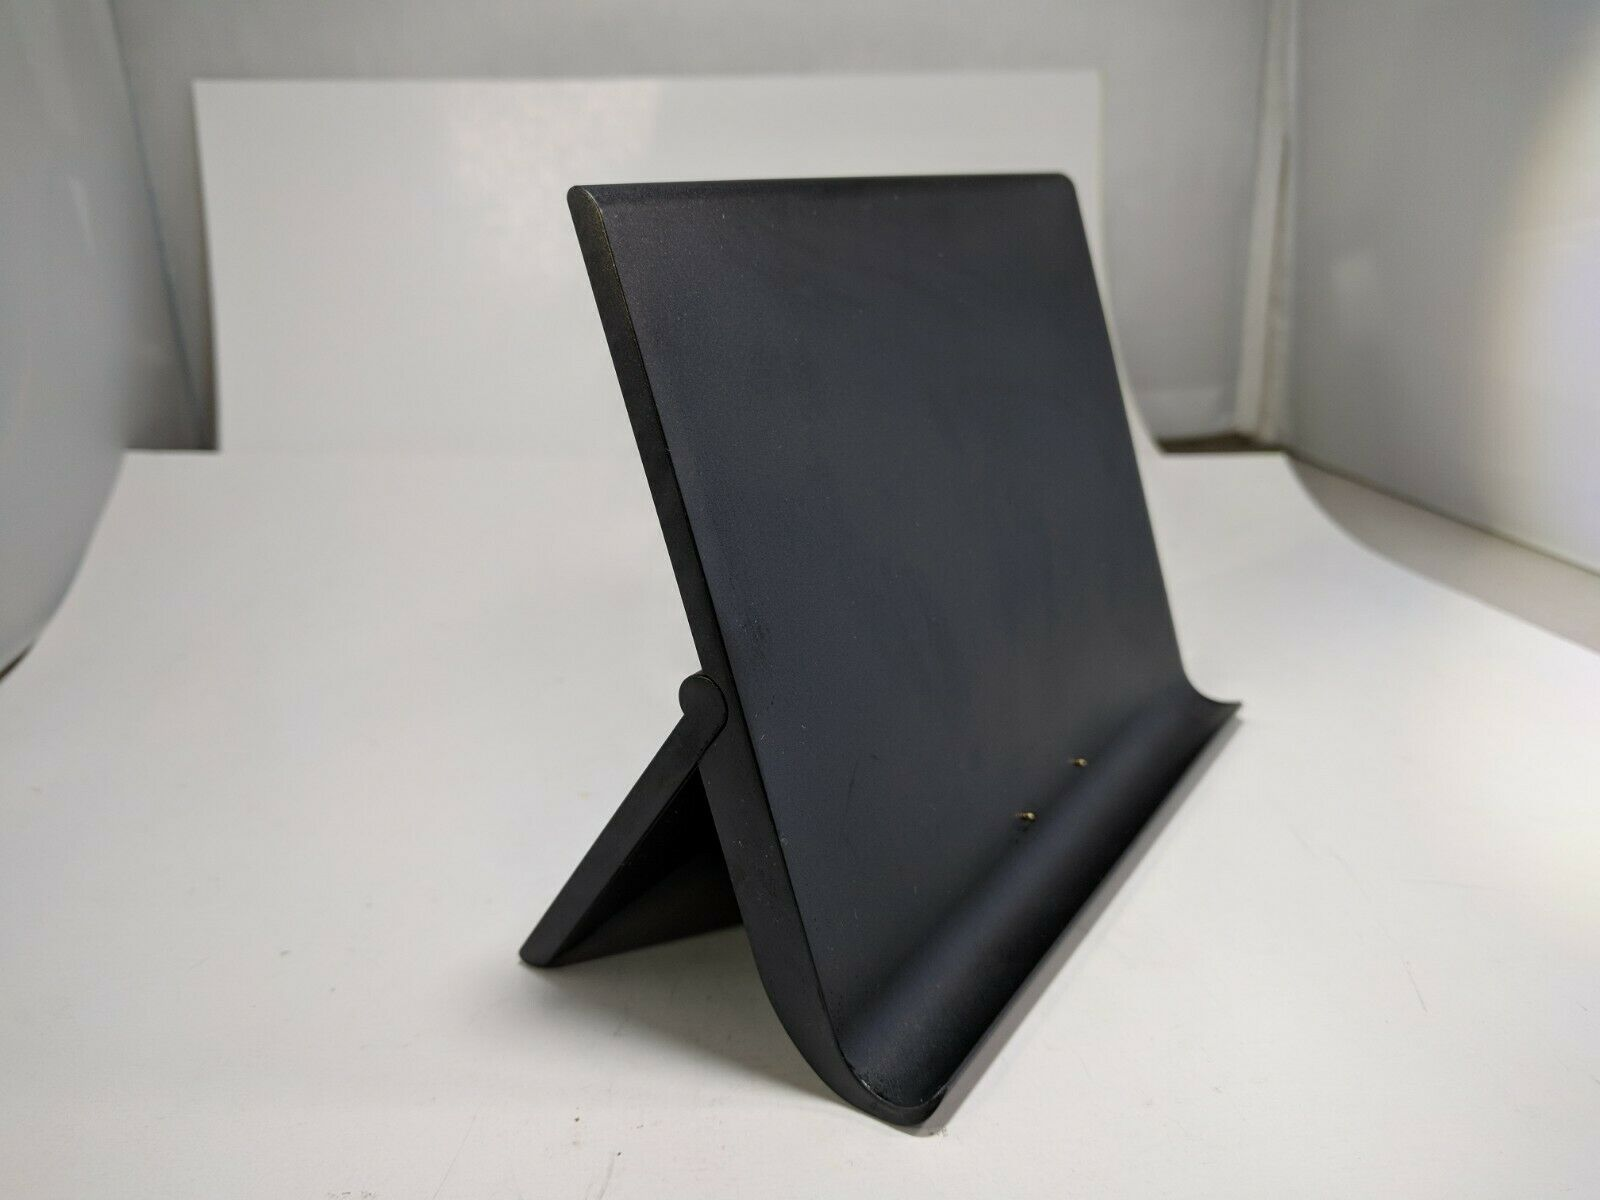 Replacement Show Mode Dock Stand For Amazon Fire Hd 10 7th Generation 841667180212 Ebay Fire Hd 10 10 Things Dock